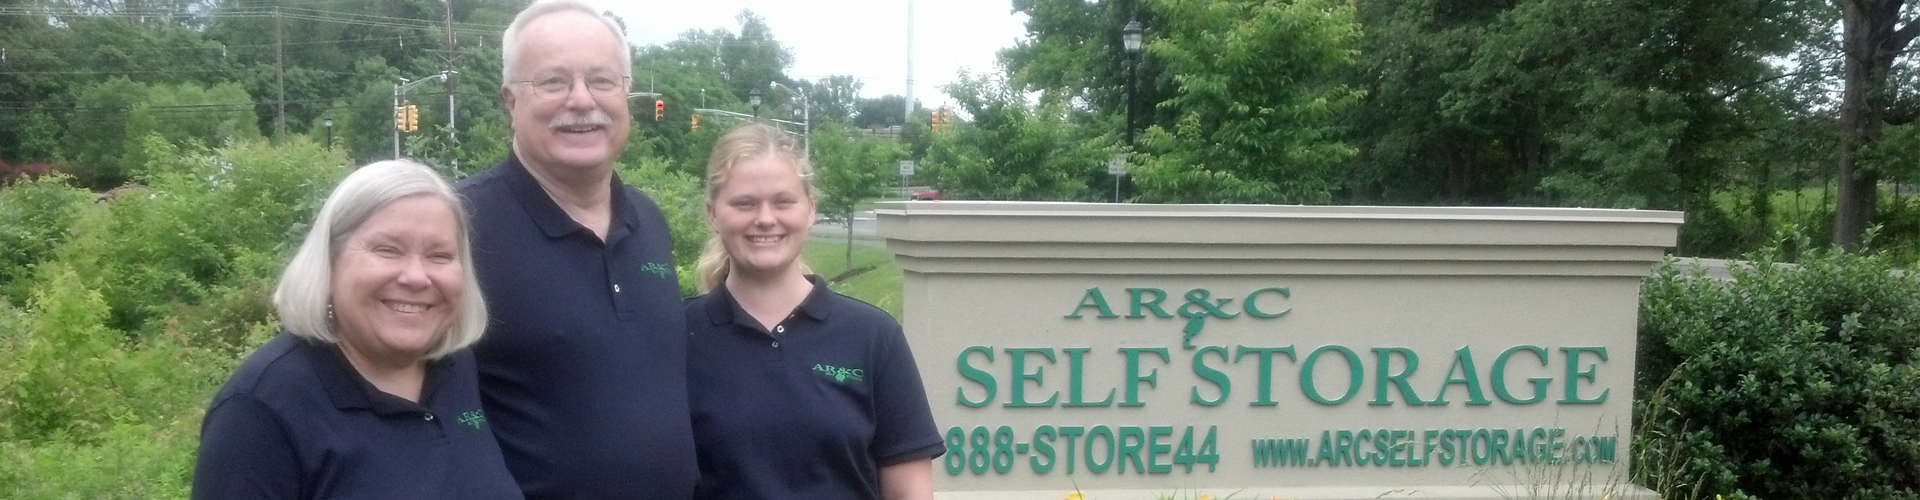 Storage Experts at AR&C Self Storage